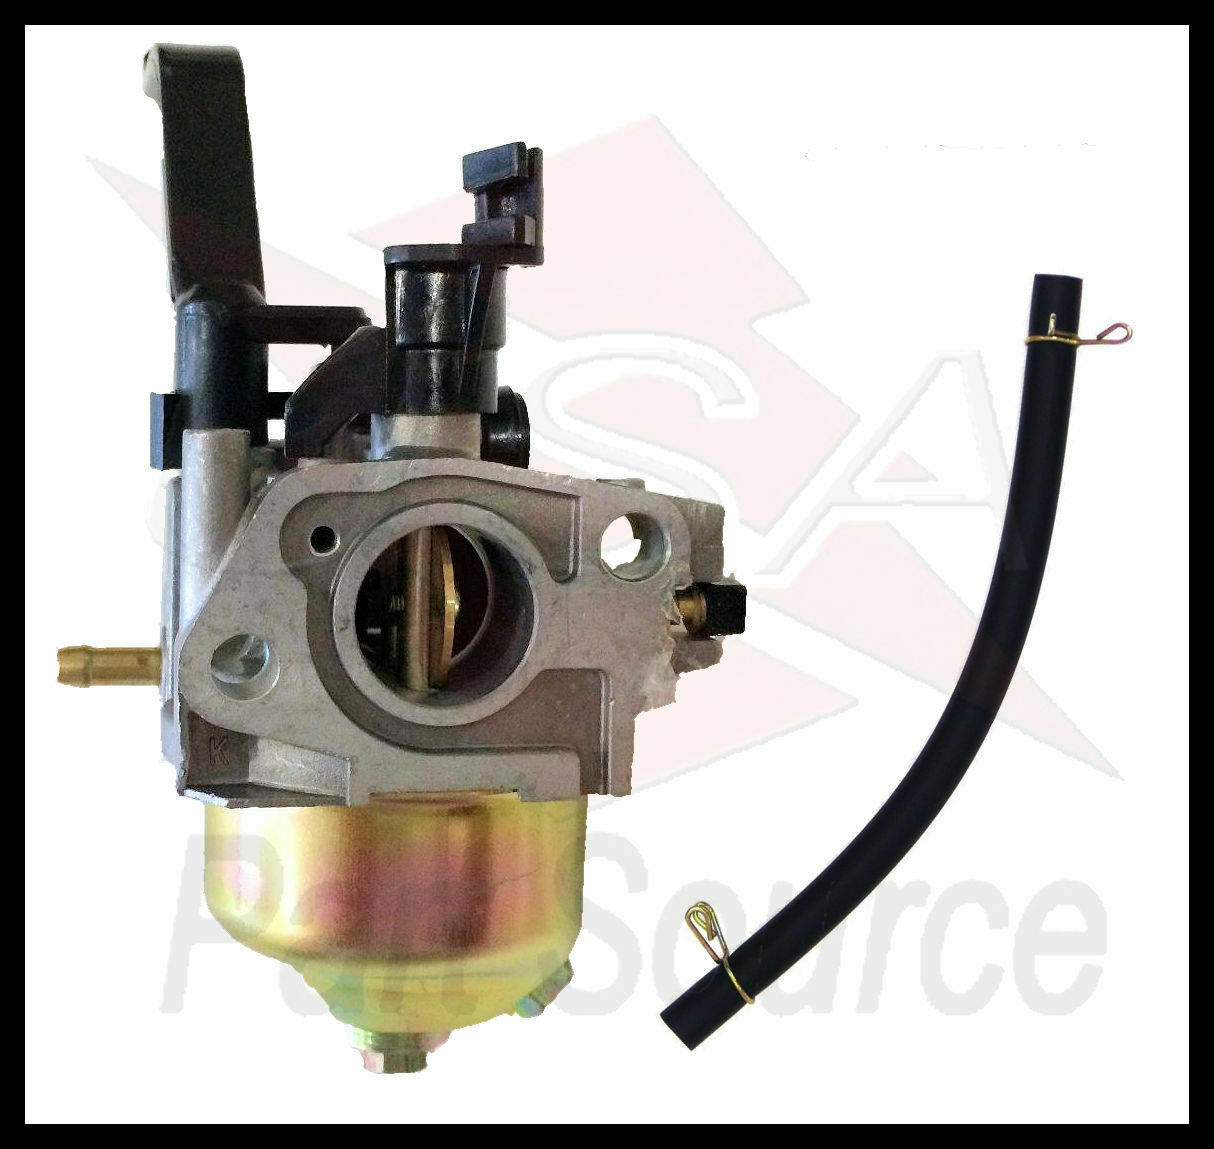 Primary image for Carburetor Sears Craftsman LCTá17 INCH Rear Tine Tiller 917.299080  Assembly